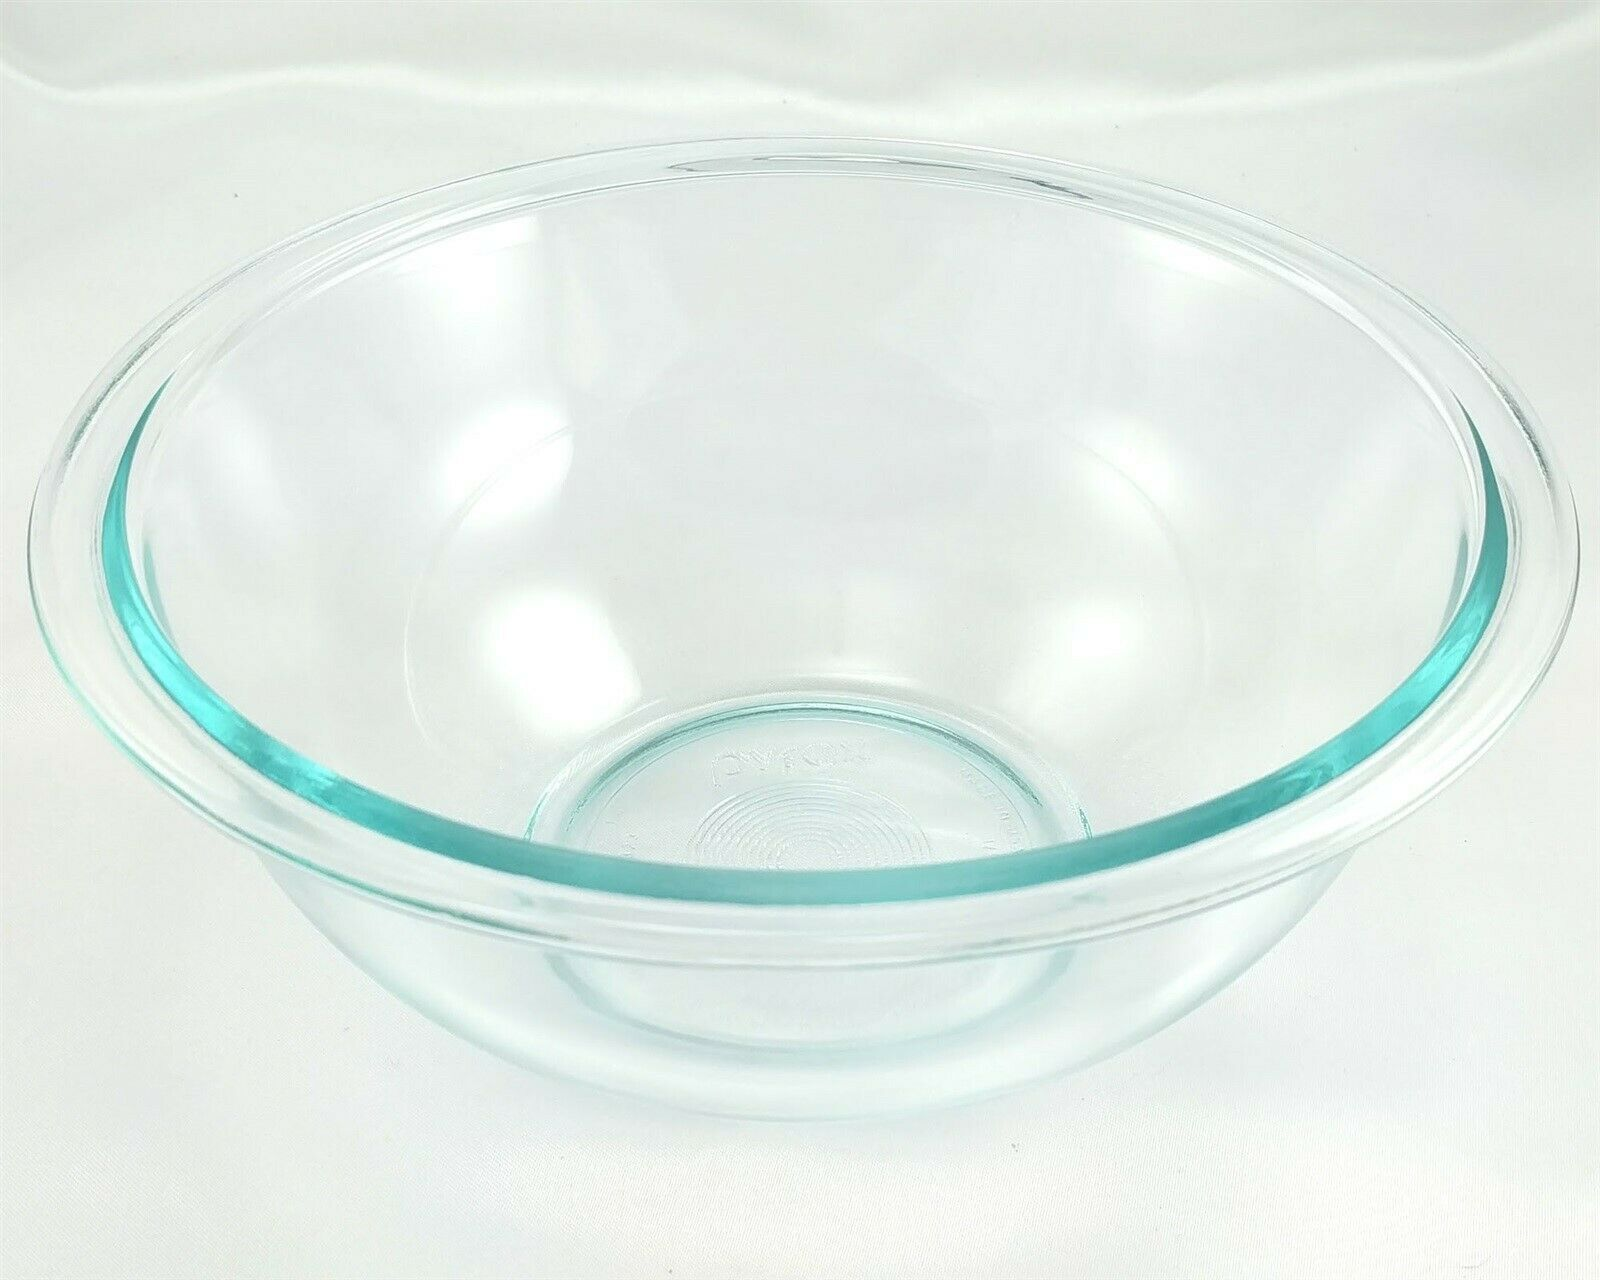 Pyrex 323 Blue Tint Mixing Serving Bowl 1½ Qt Extended Rim Made in the USA